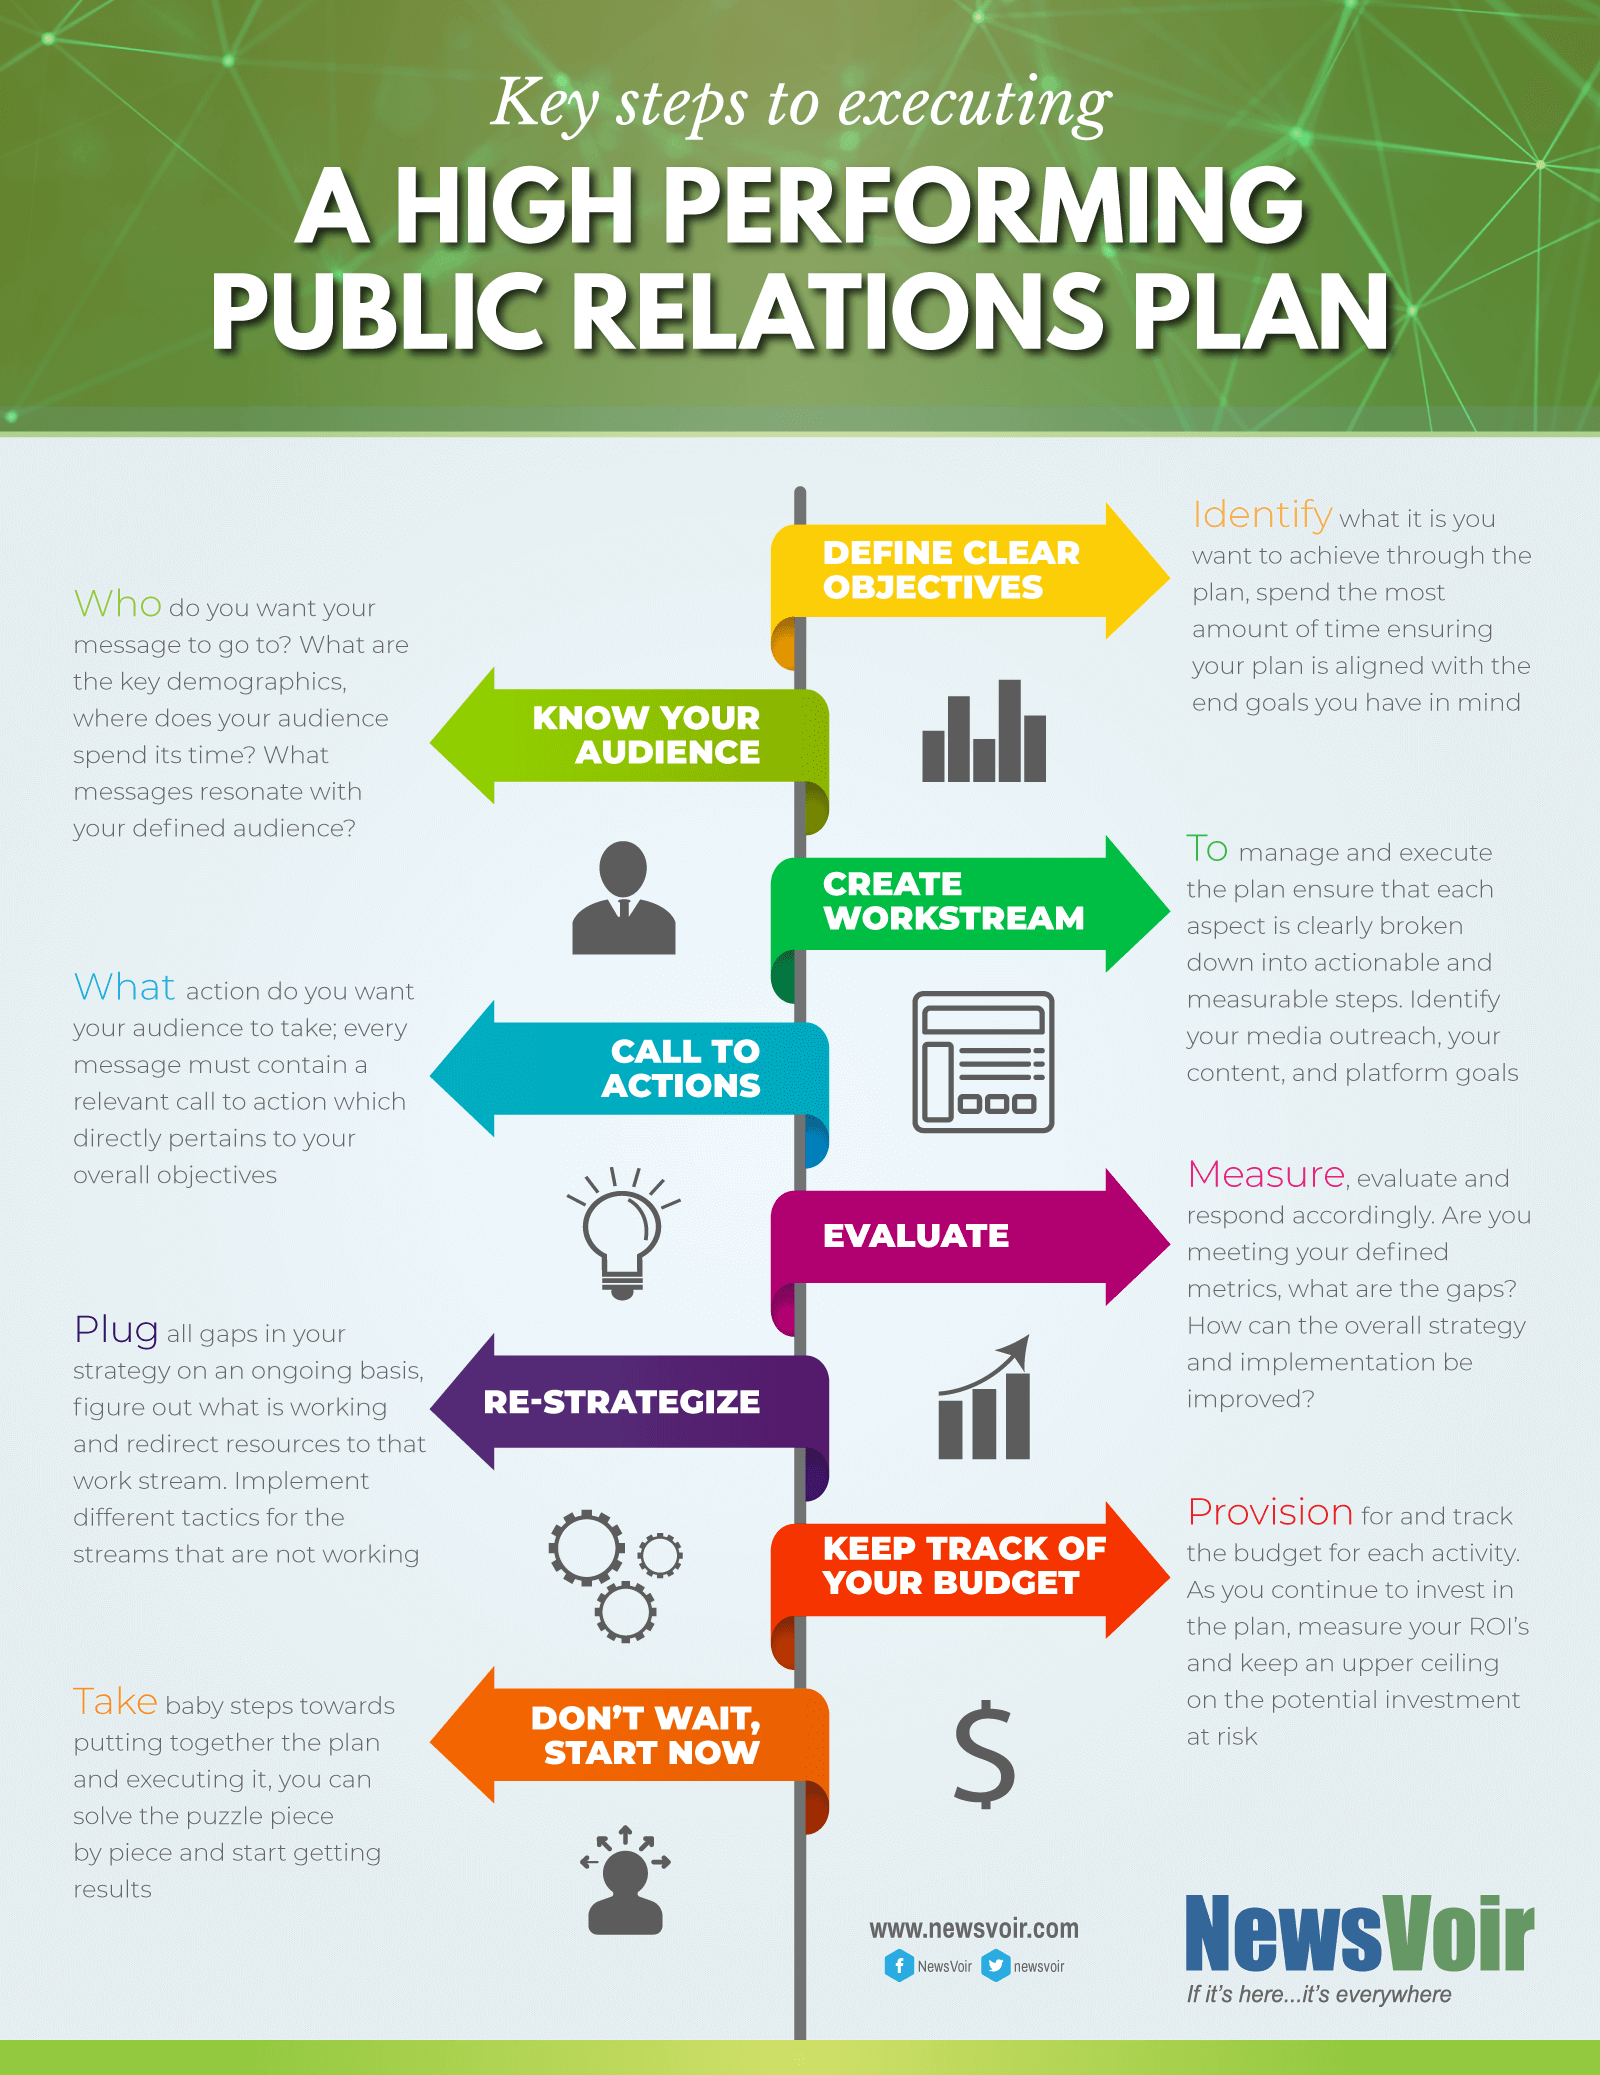 Watch How to Evaluate a PR Plan video